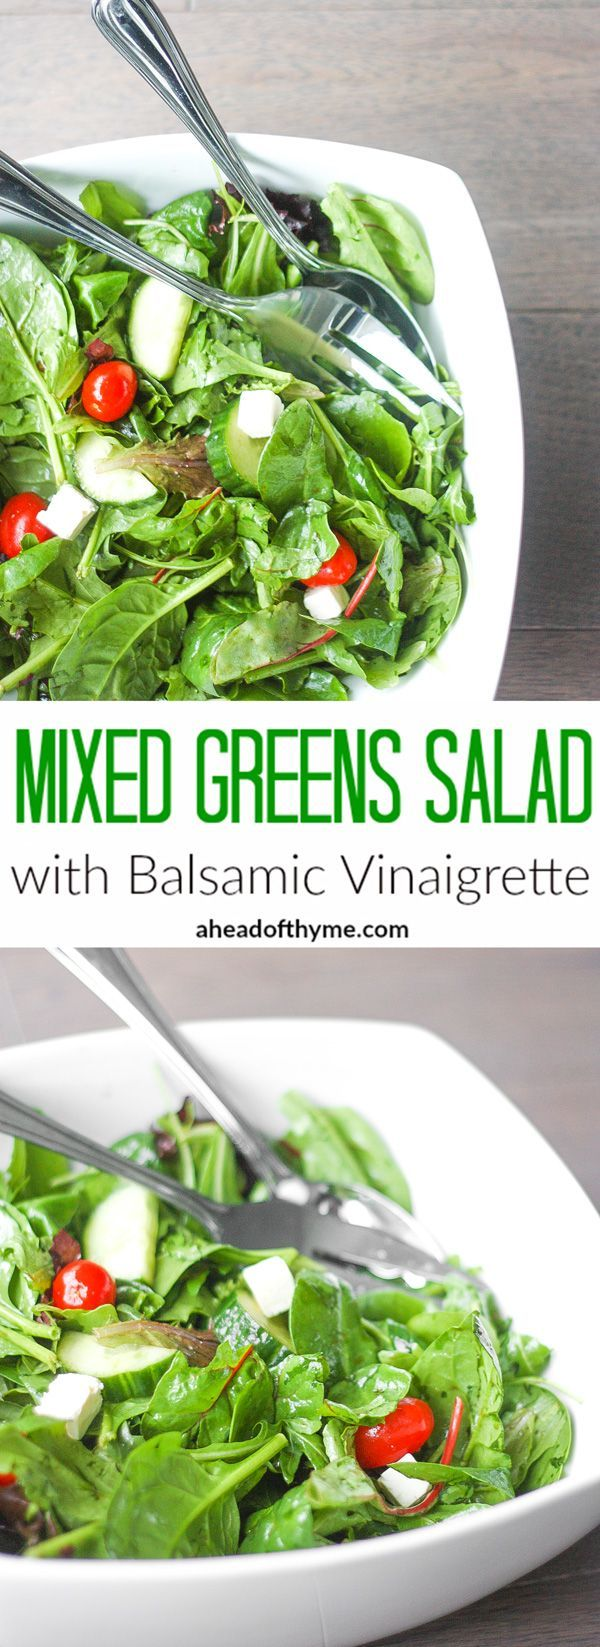 Mixed Greens Salad with Balsamic Vinaigrette: When I want to make a quick and easy salad, this mixed greens salad with balsamic vinaigrette is my go-to recipe. It makes a great side dish at dinner or a light lunch | http://aheadofthyme.com